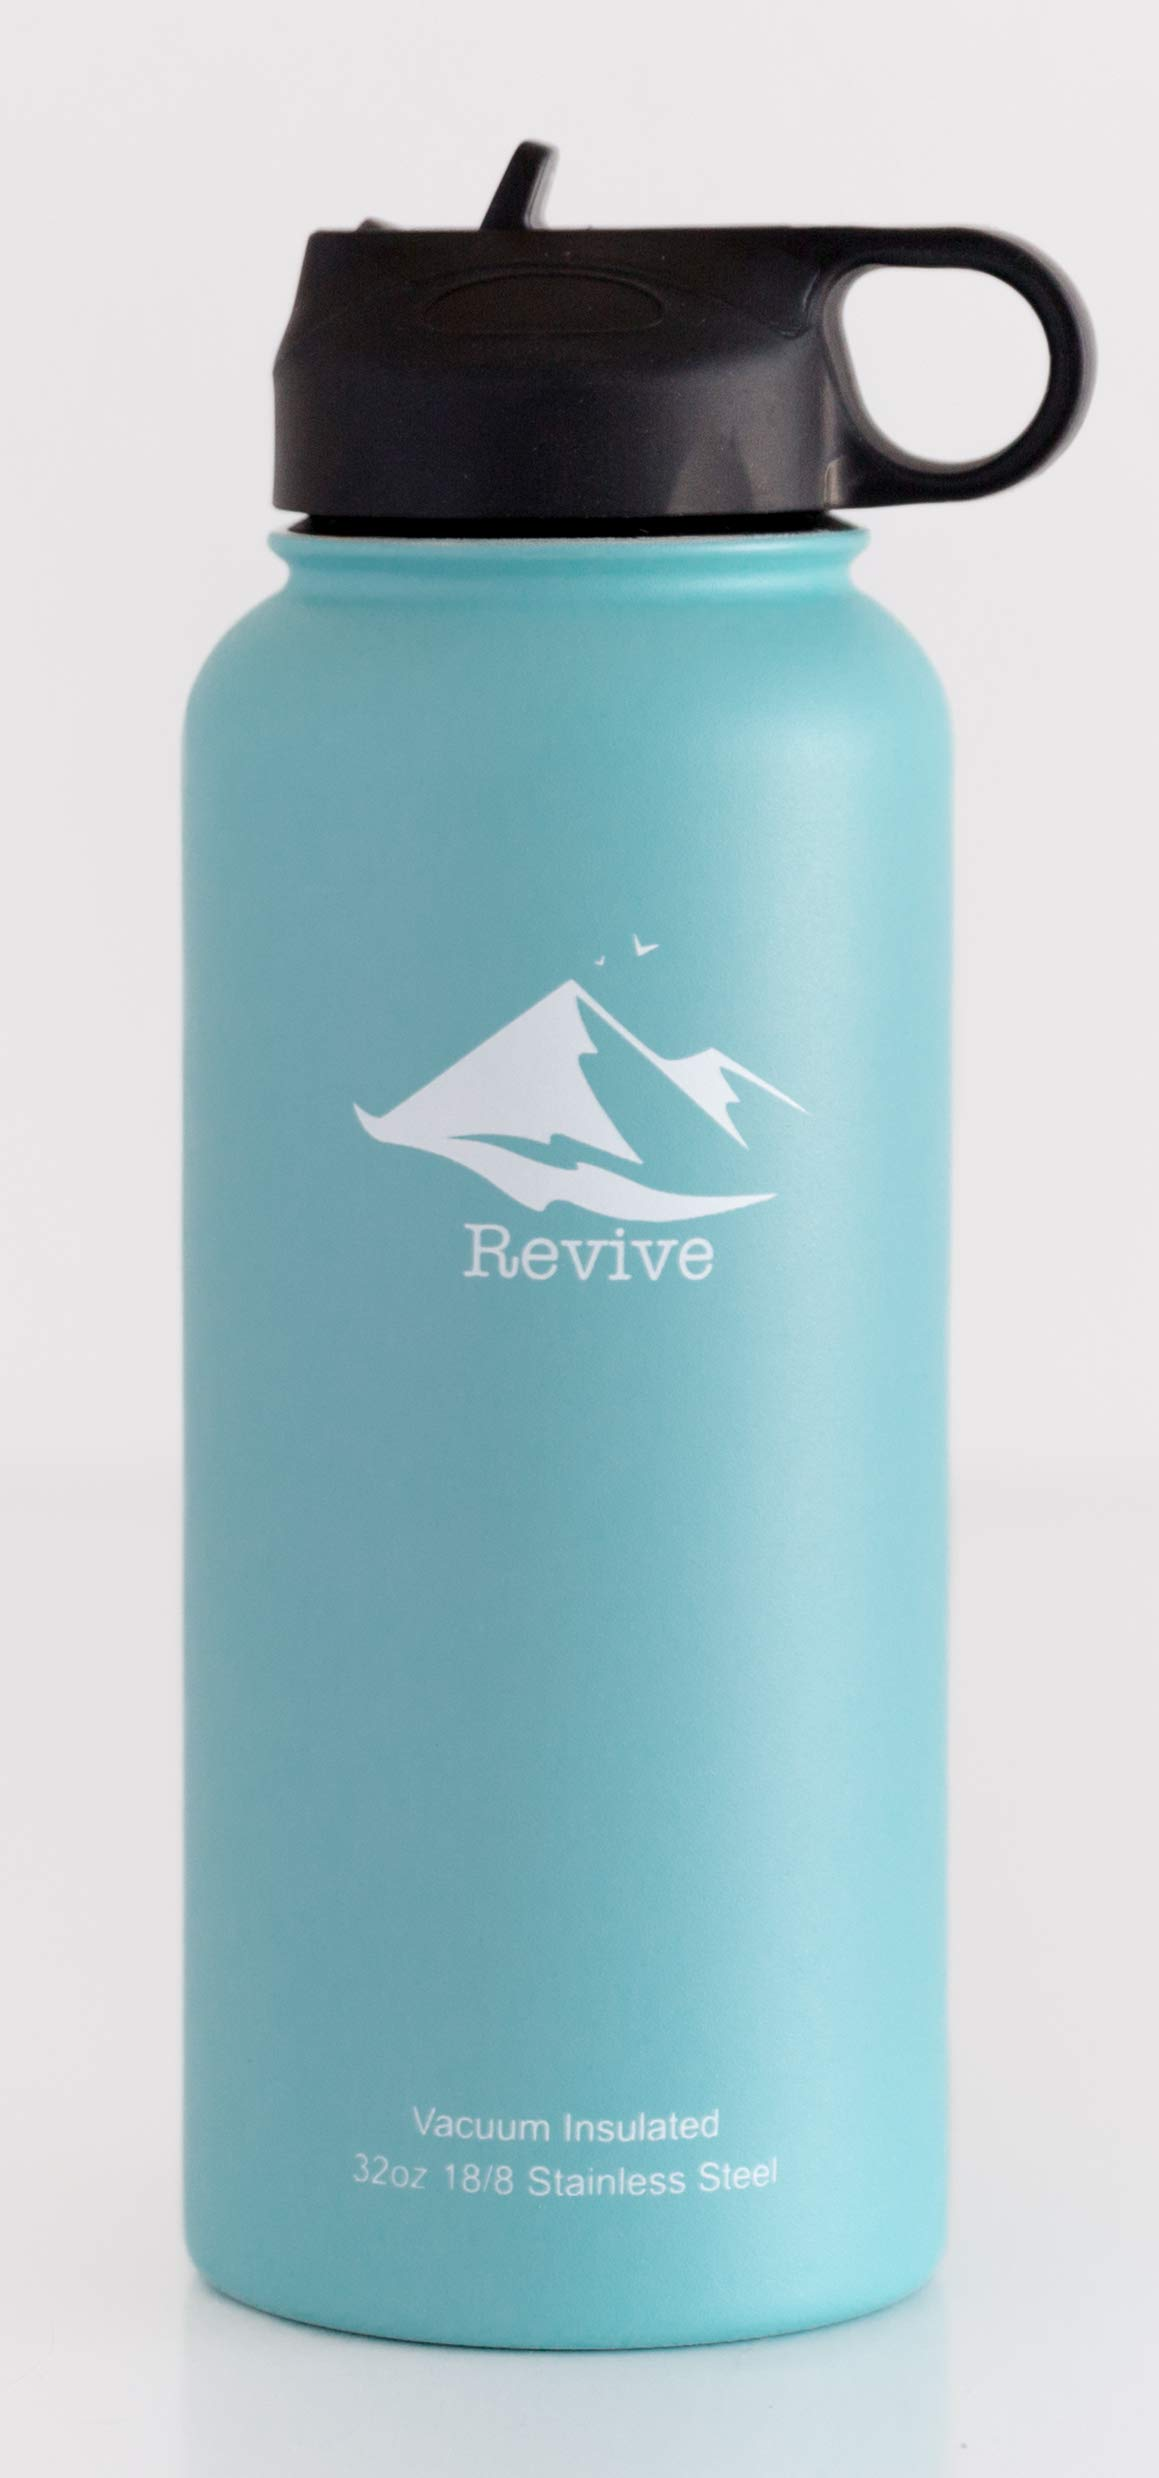 Revive 32oz Stainless Steel Water Bottle Eco Friendly BPA Free Double Wall Vacuum Insulated 18/8 Food Grade Stainless Steel (Teal)